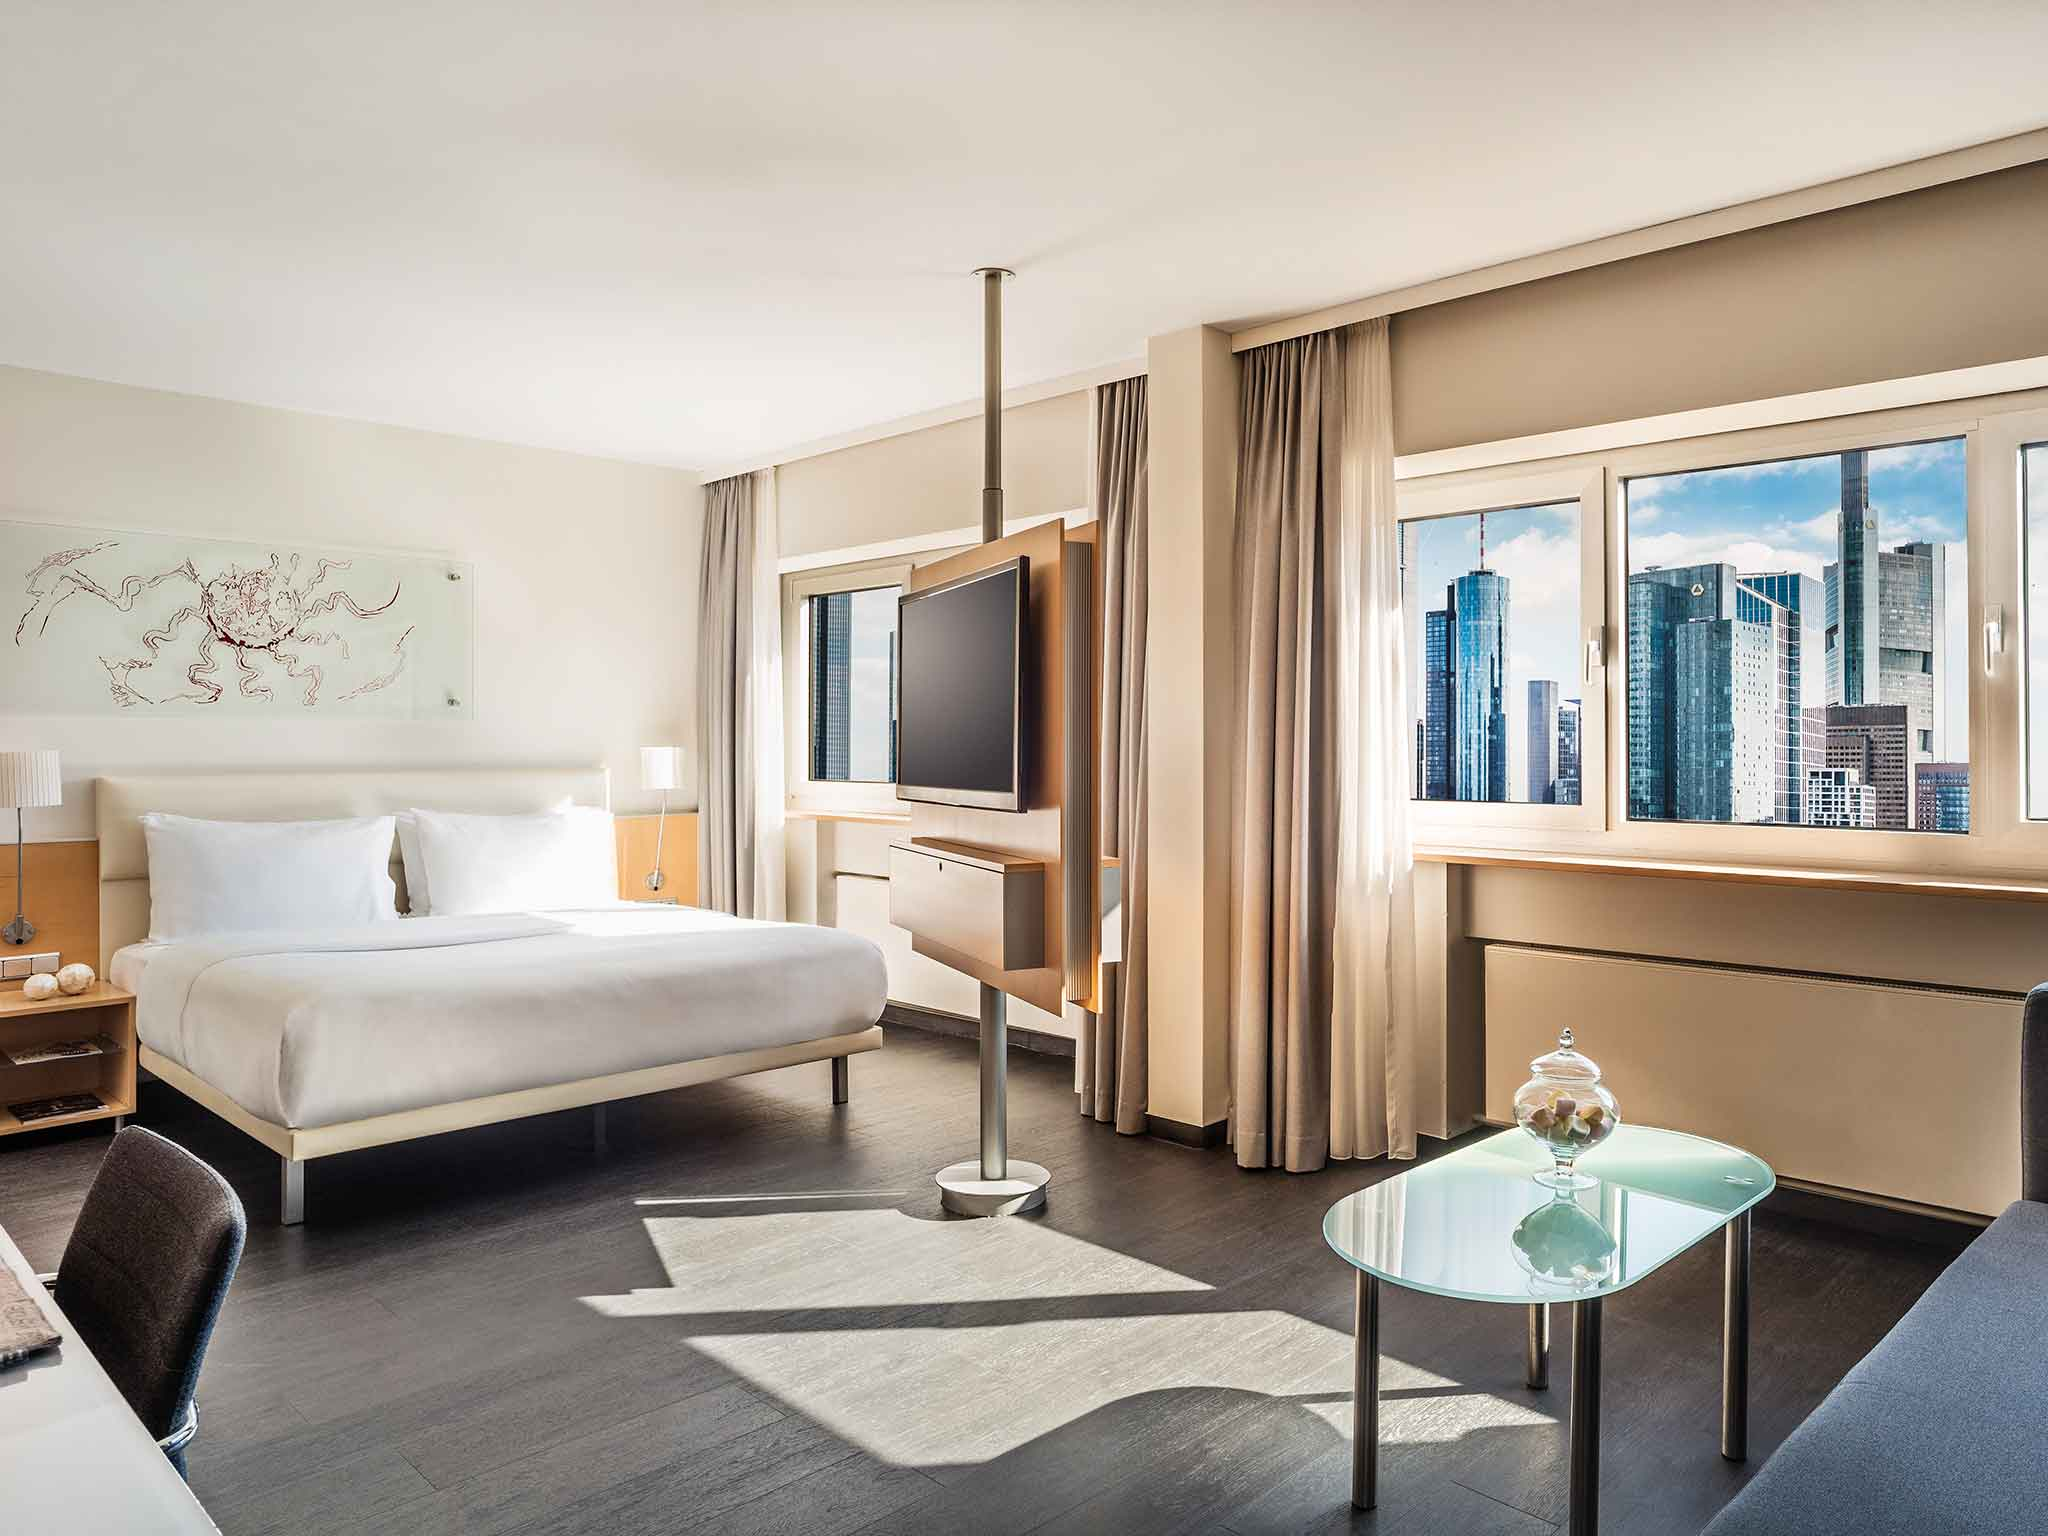 Spacious Guest Rooms at the Le Meridien Frankfurt Hotel next to the train station